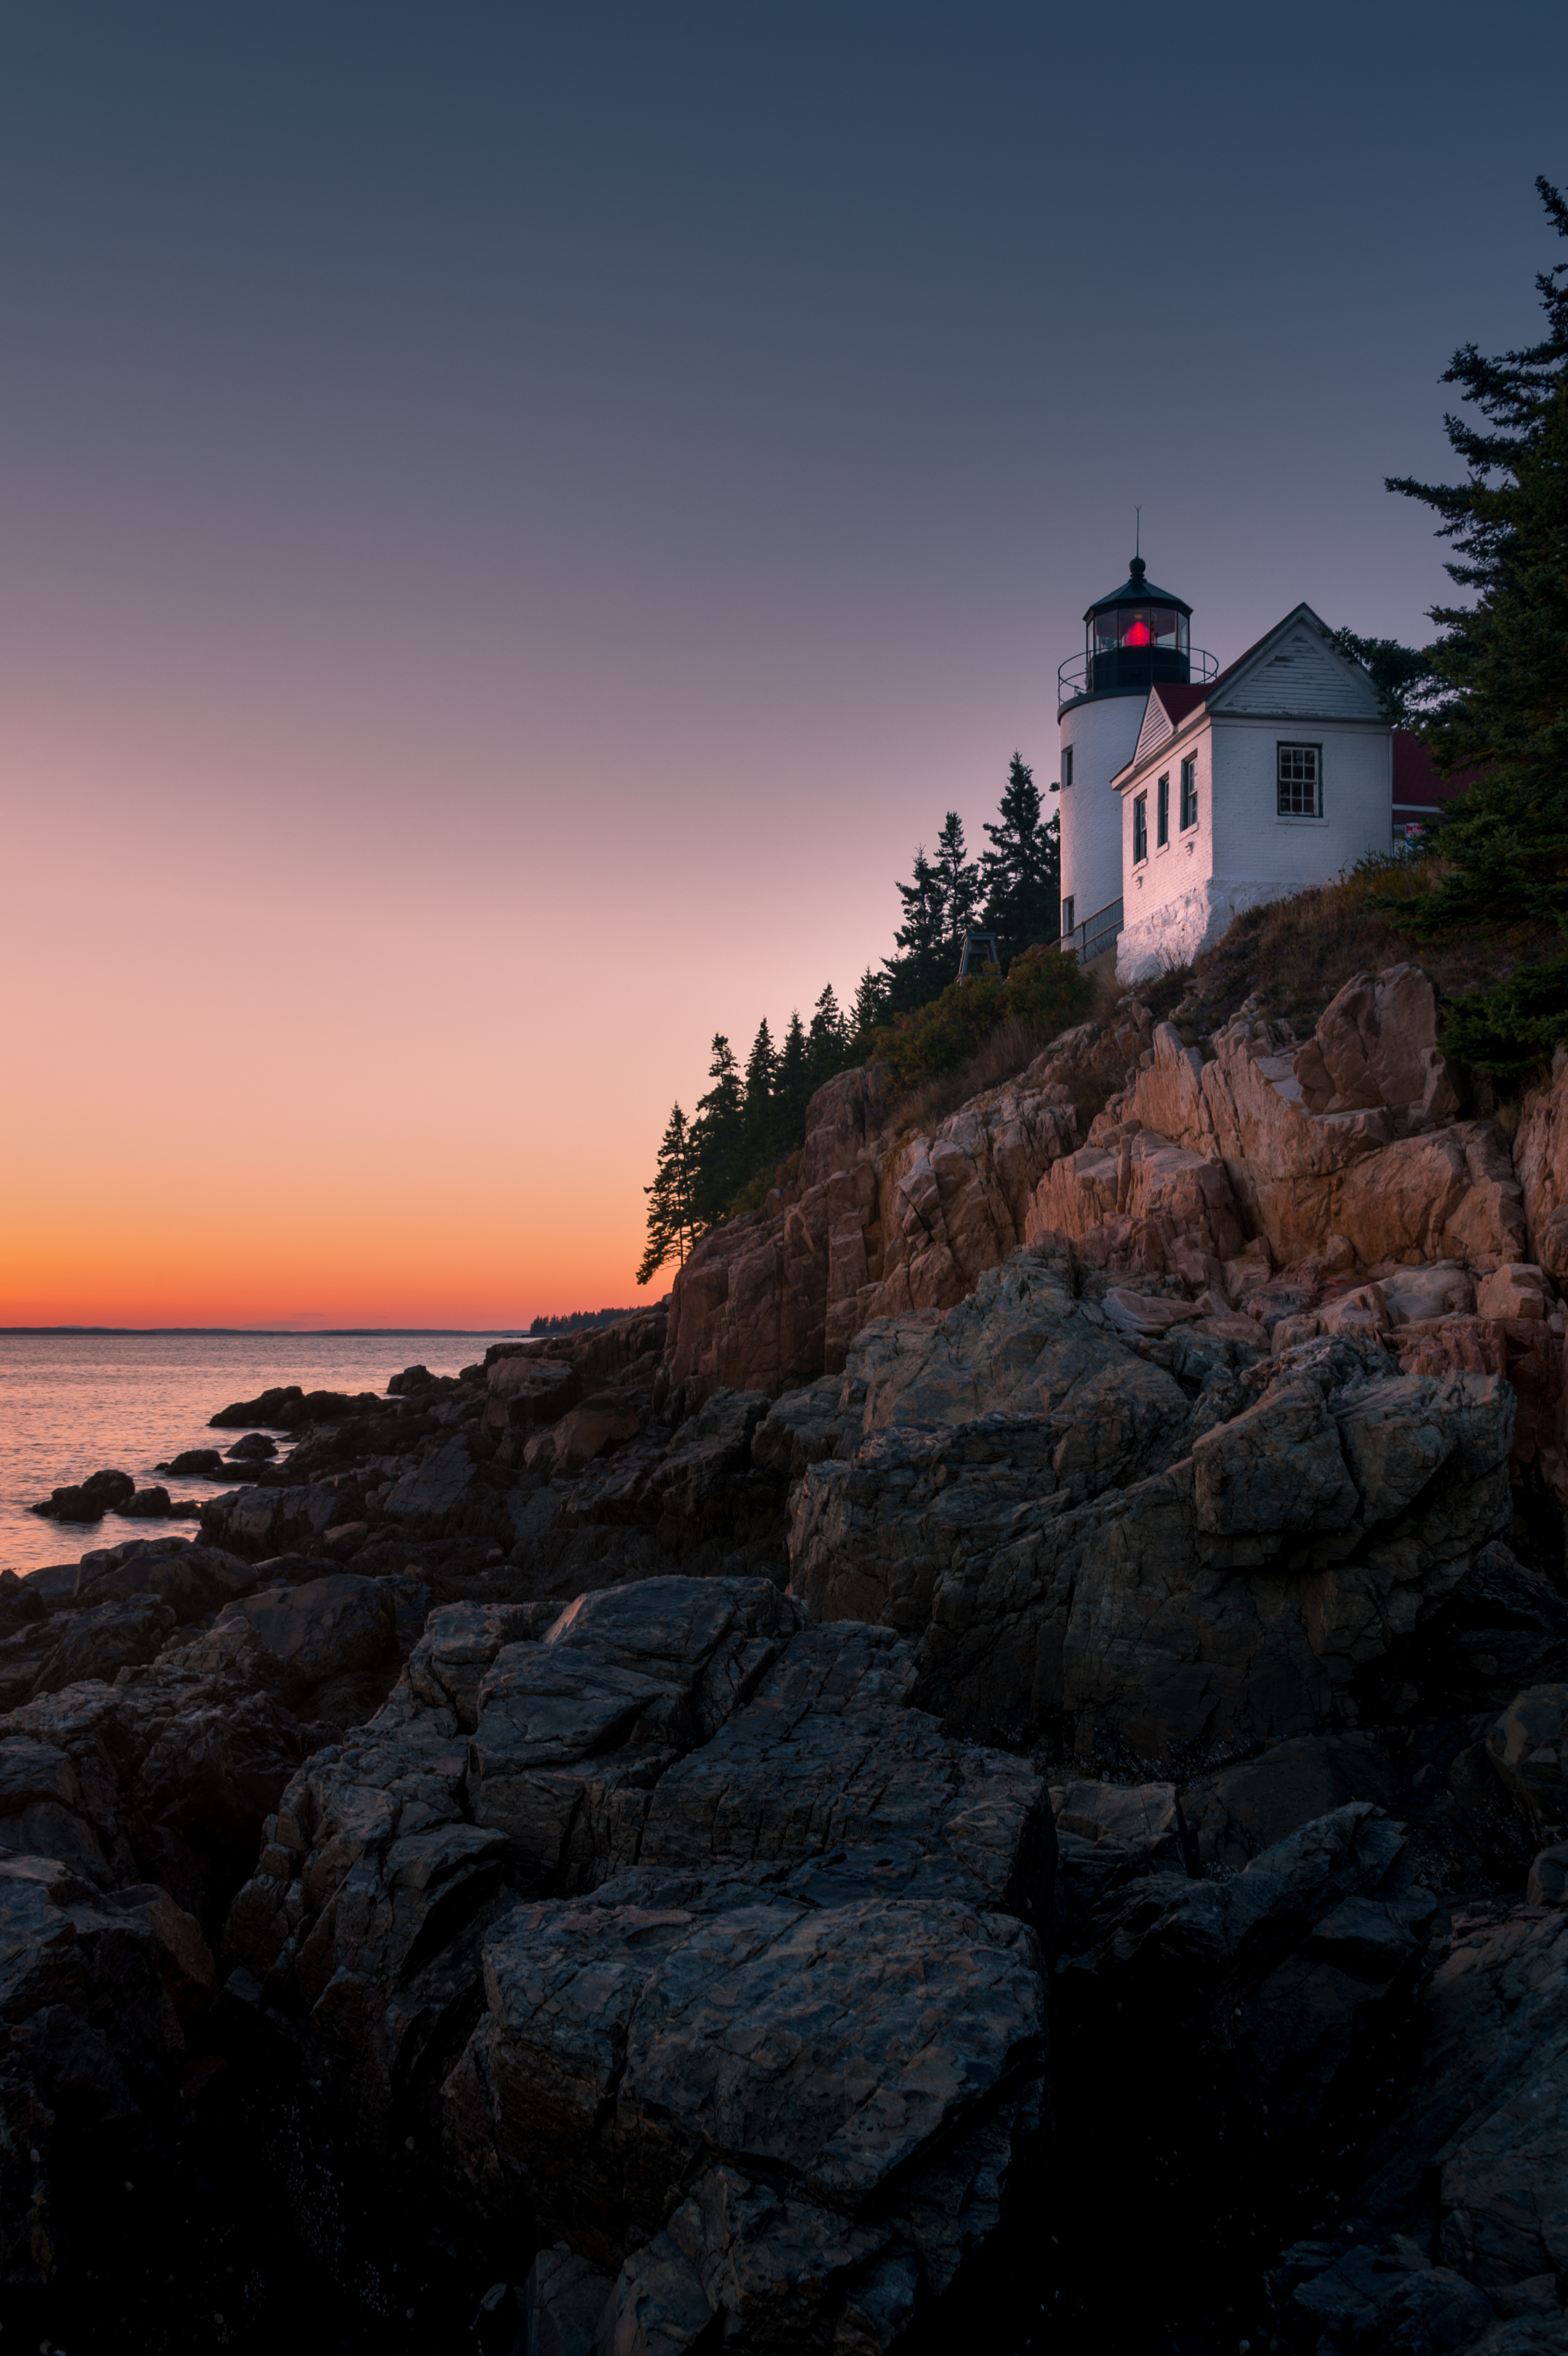 black single women in bass harbor Current local time in bass harbor, hancock county, maine, usa, eastern time zone check official timezones, exact actual time and daylight savings time conversion dates in 2018 for bass harbor, me, united states of america - fall time change 2018 - dst to eastern standard time.